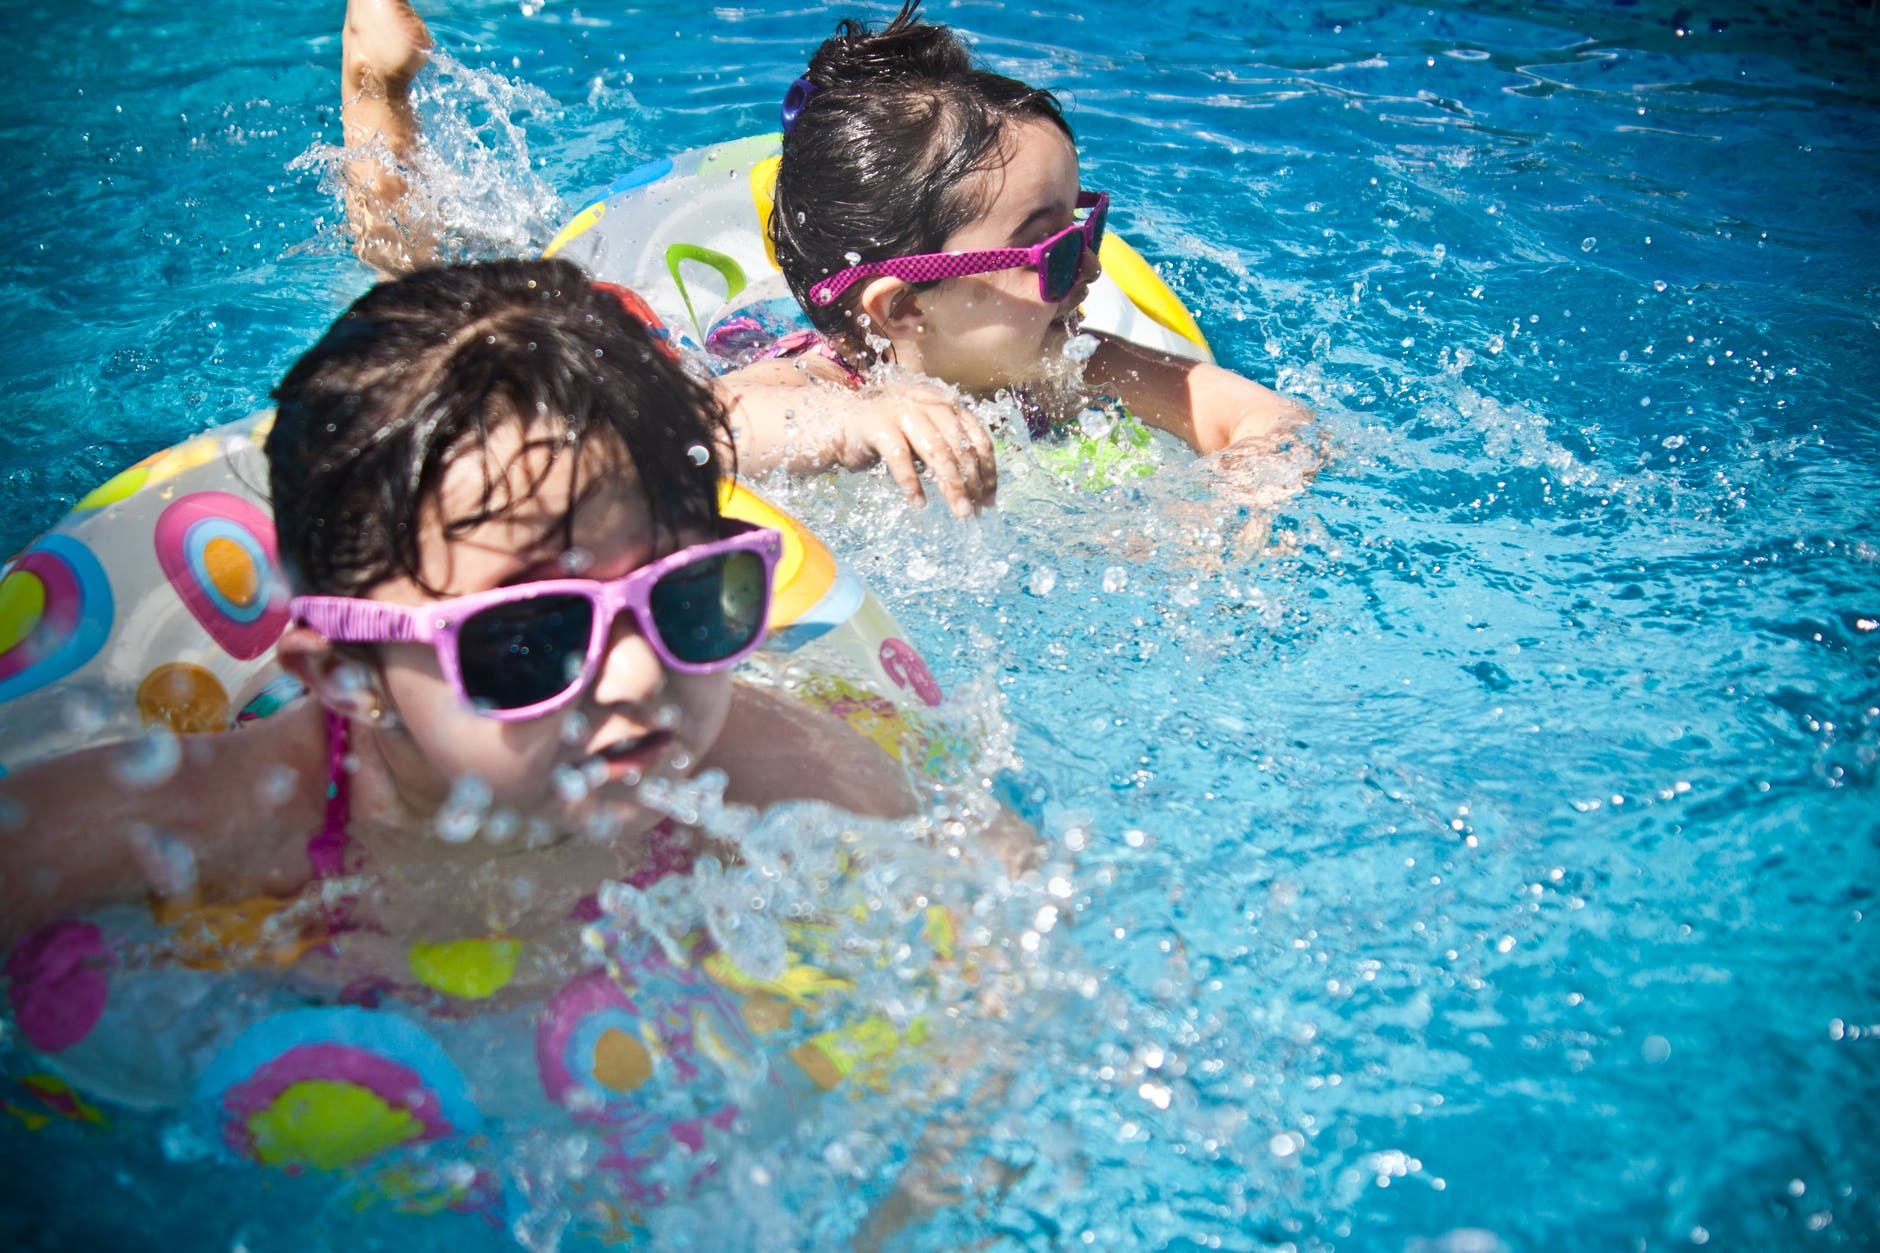 During your lifetime, you will produce enough saliva to fill 2 swimming pools.